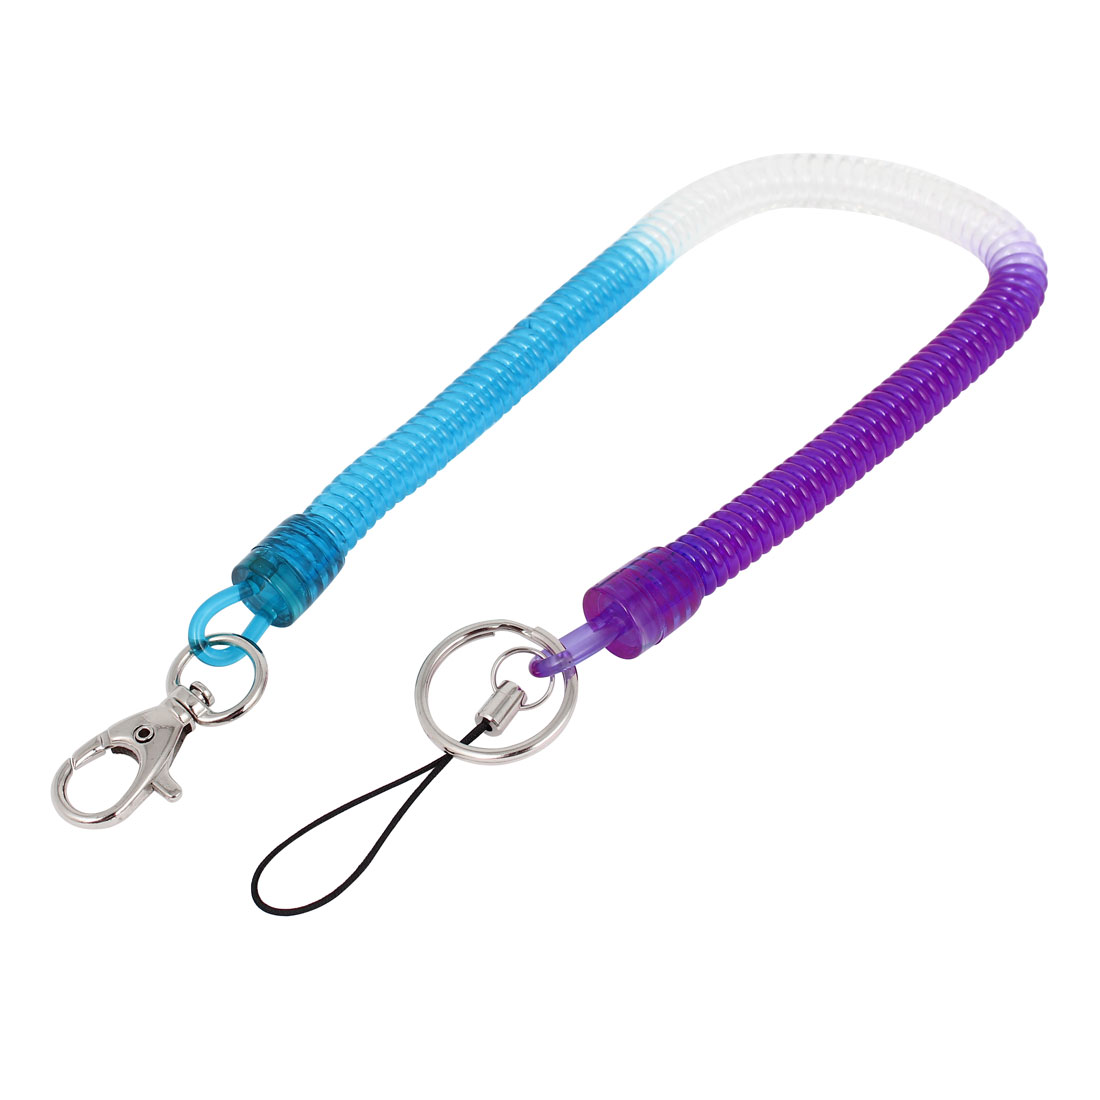 Tri-color Plastic Stretchy Spiral Spring Coiled Strap Lanyard for Phone Keys